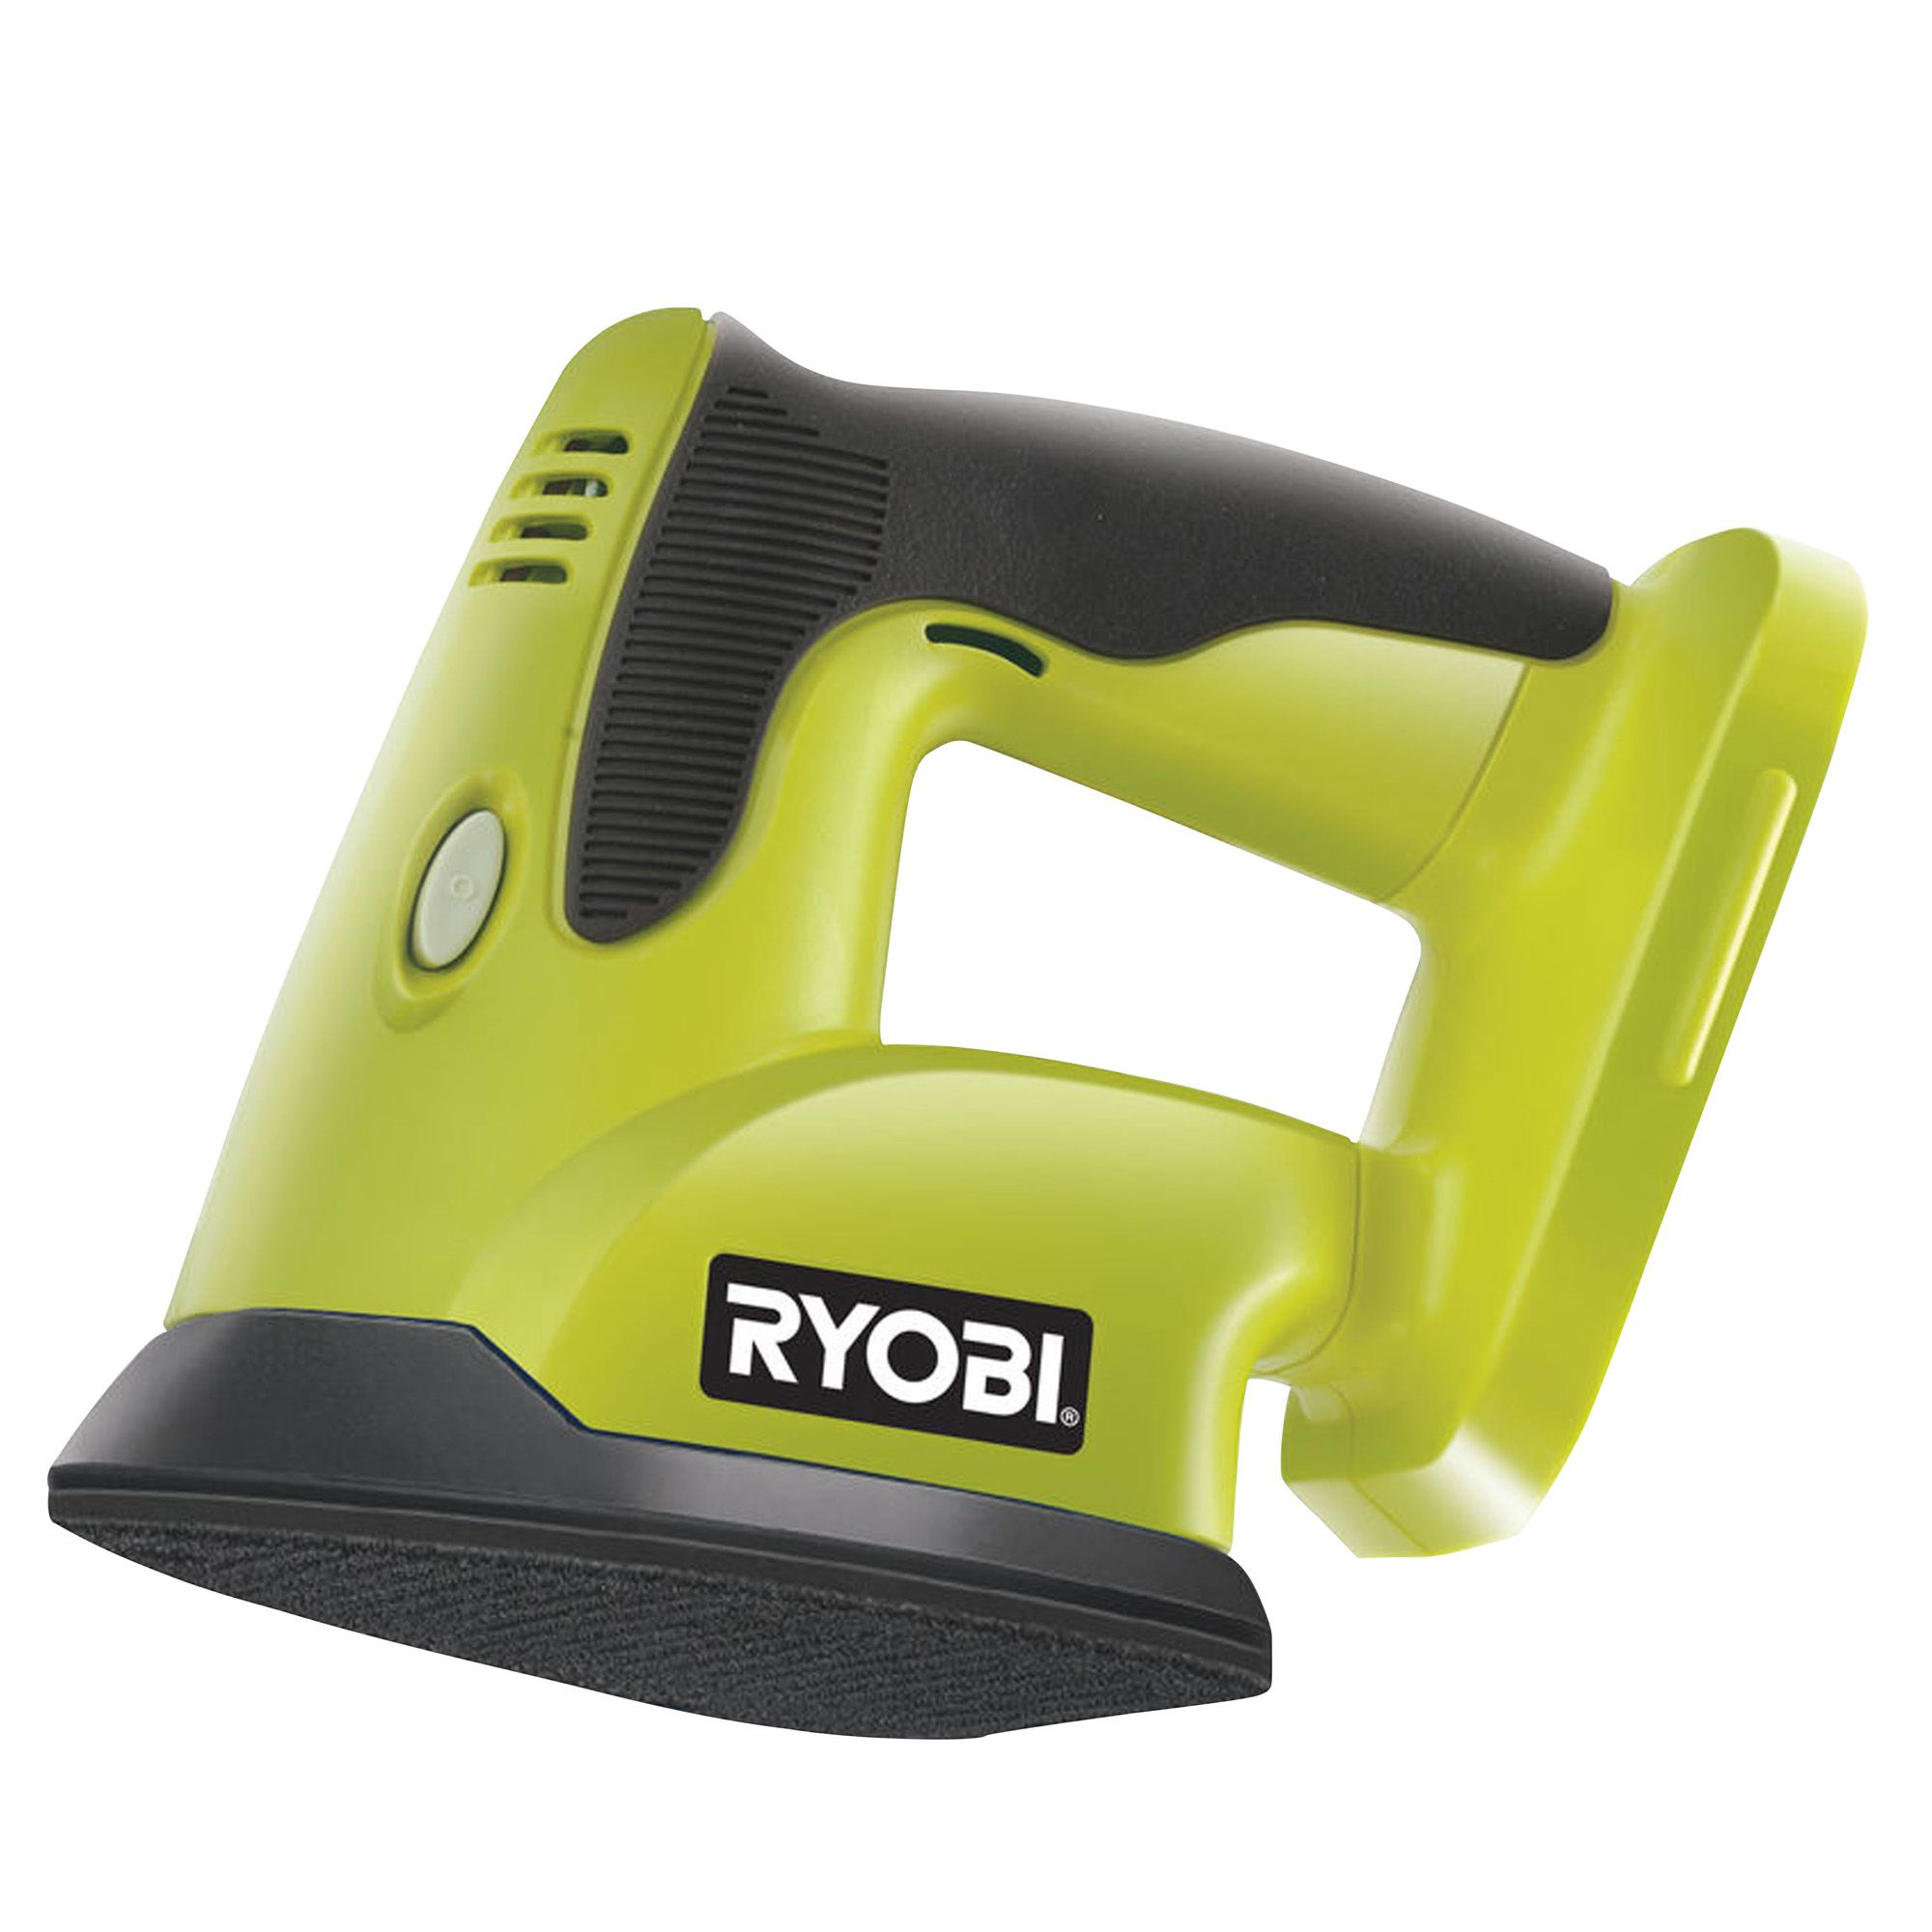 Corner Baths With Shower Screens Ryobi One Cordless Detail Sander Ccc1801m Bare